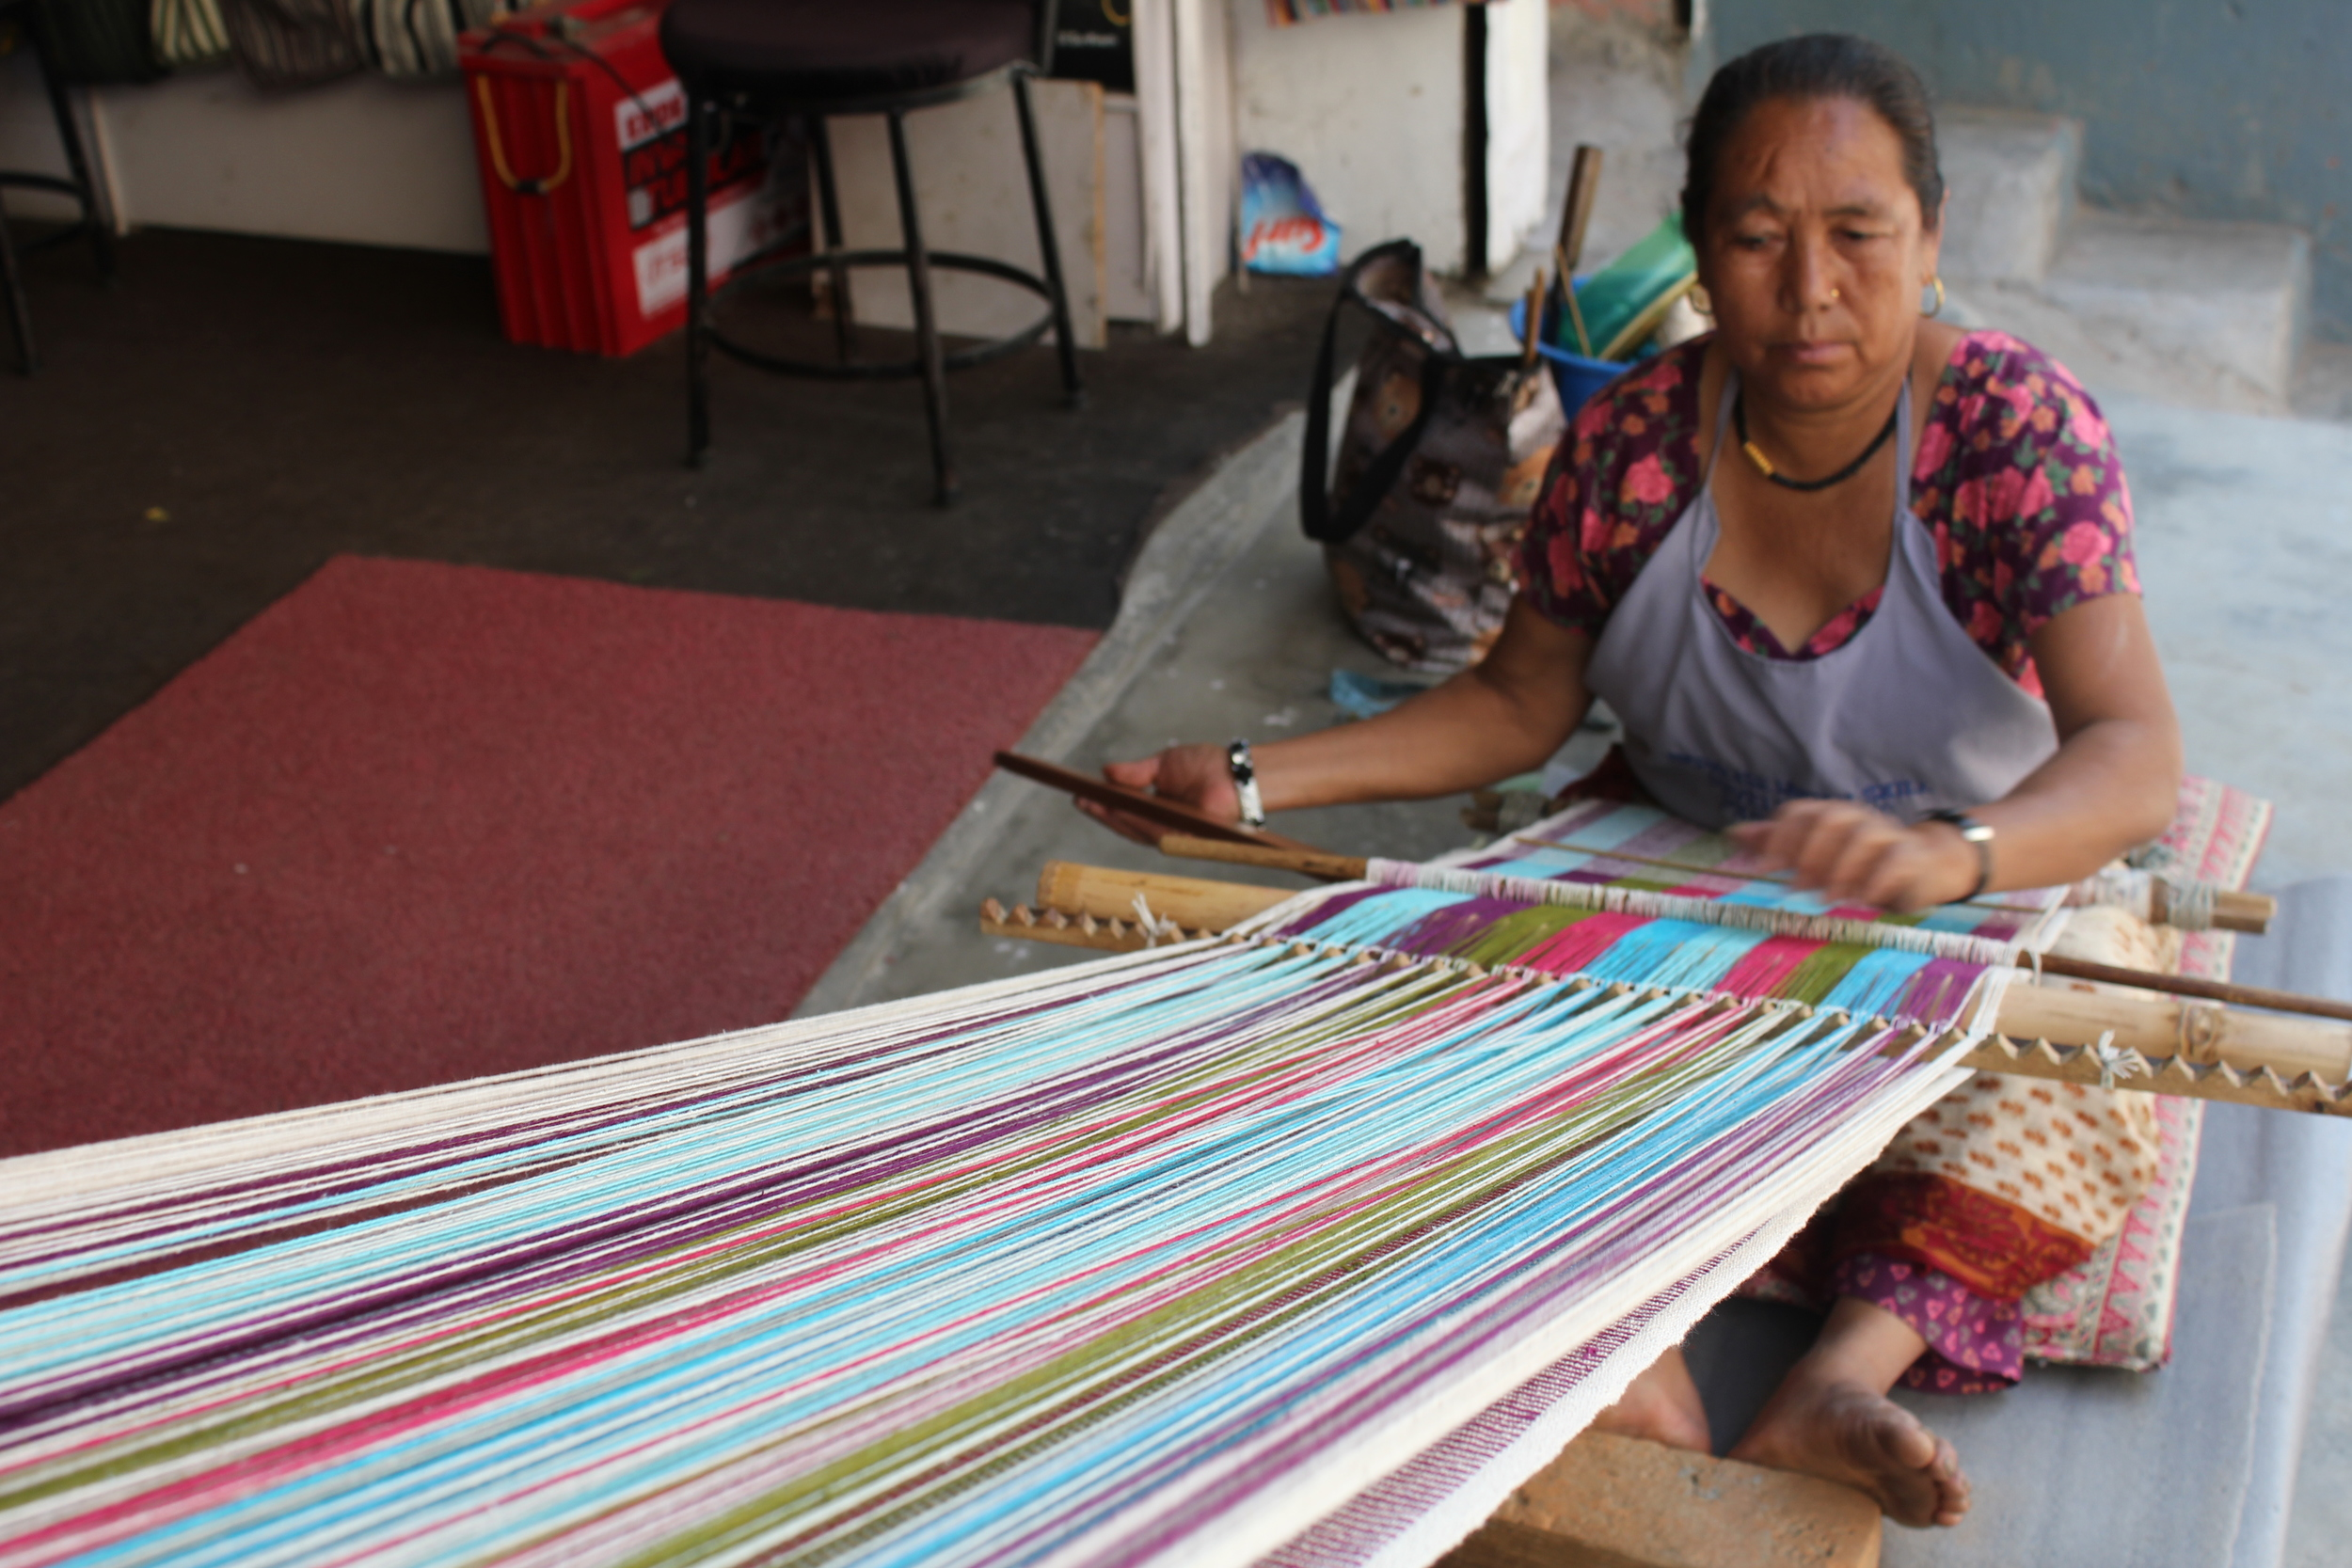 A traditional backs strap loom being used by Sita